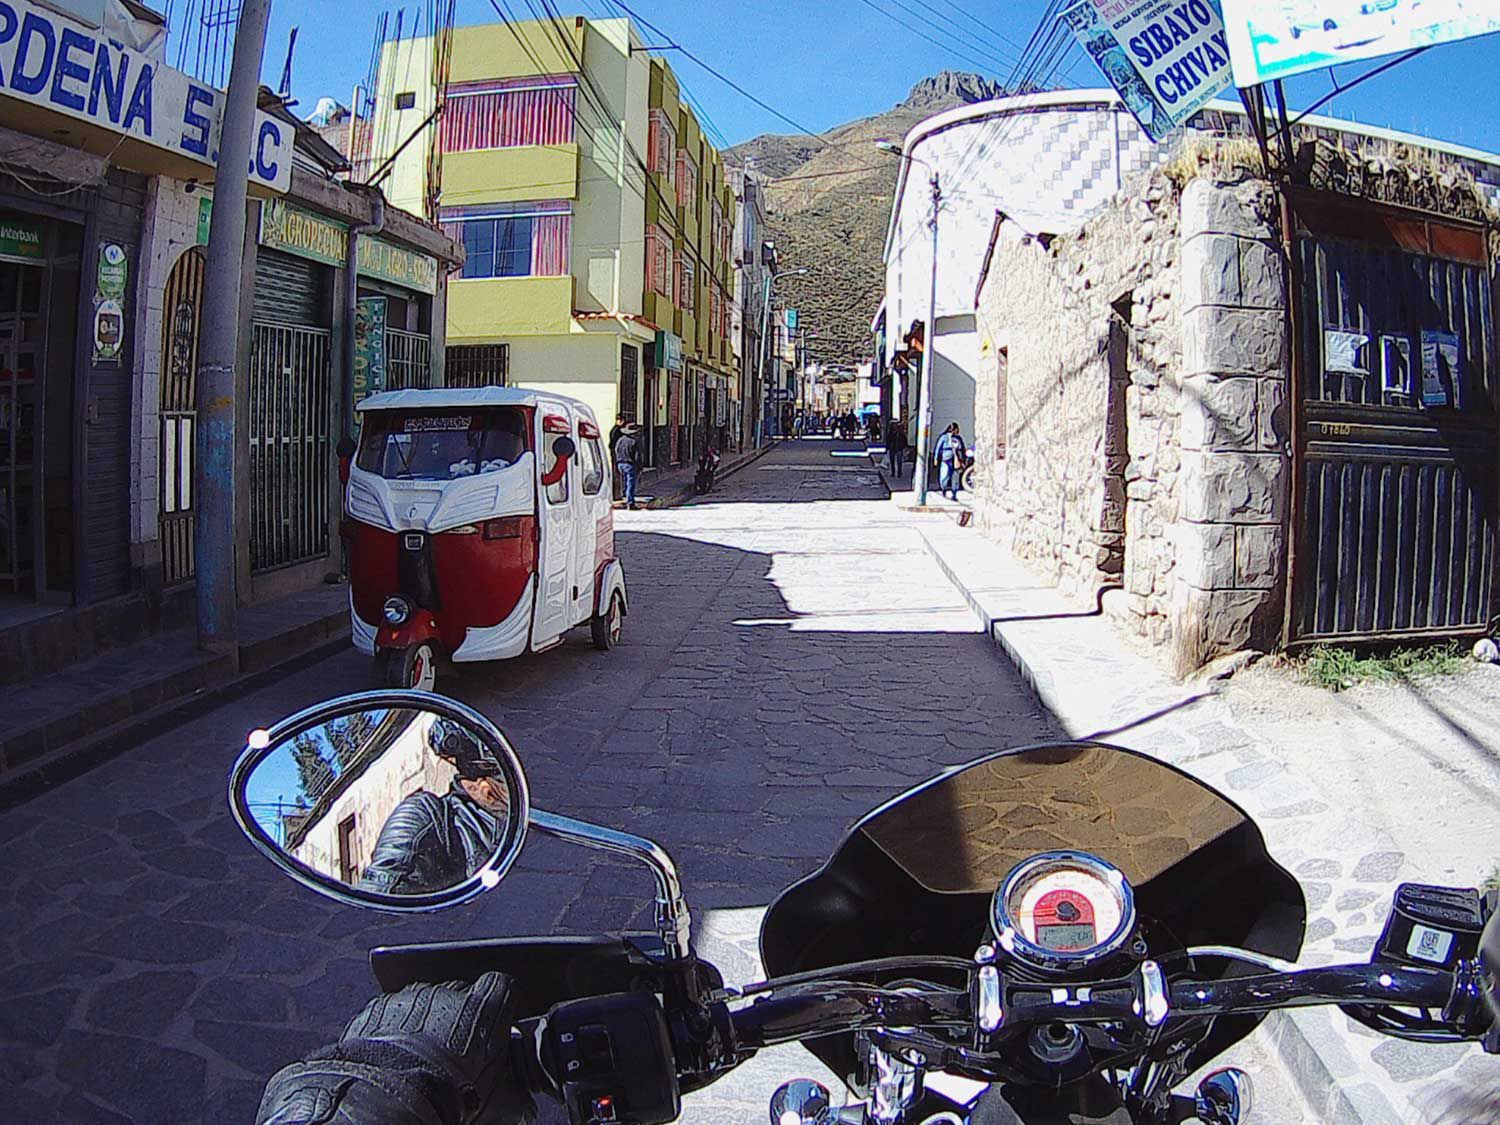 Riding through the narrow streets of a chilly mountain town.